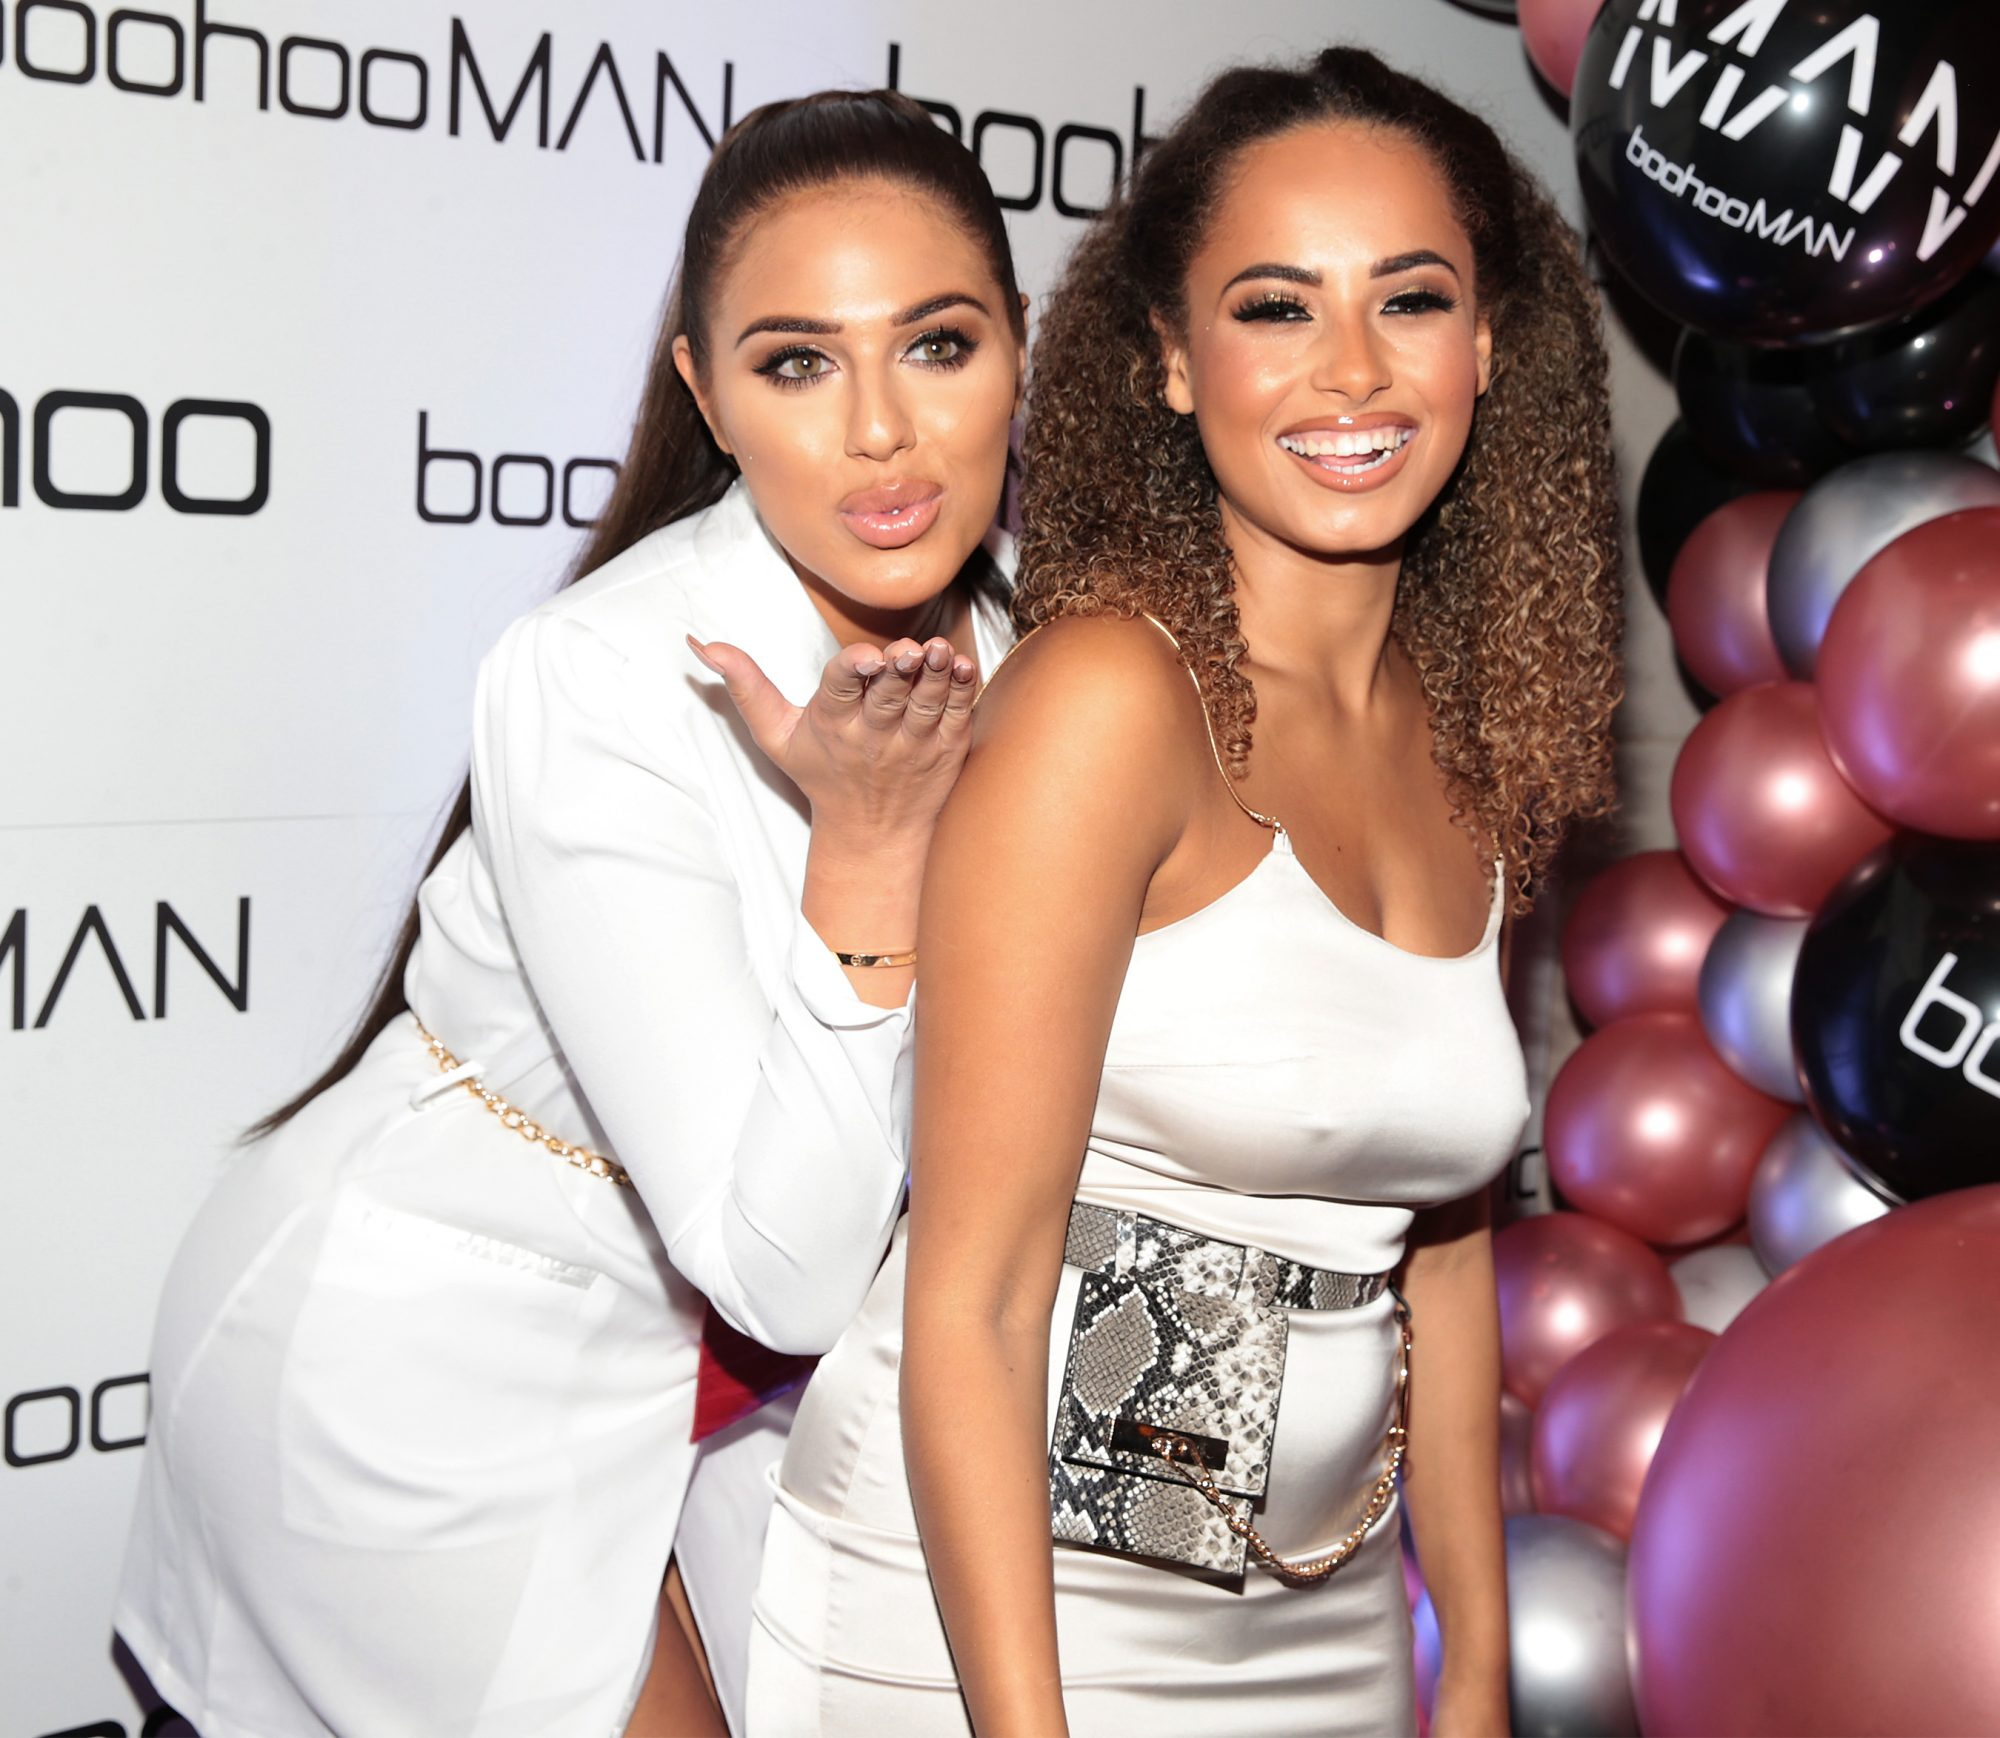 Guests enjoyed Prosecco ,cocktails and canapés throughout the night. Ice cream was served also in branded tubs in a nod to boohoo's new podcast 'Get the Scoop' with host Maura Higgins.